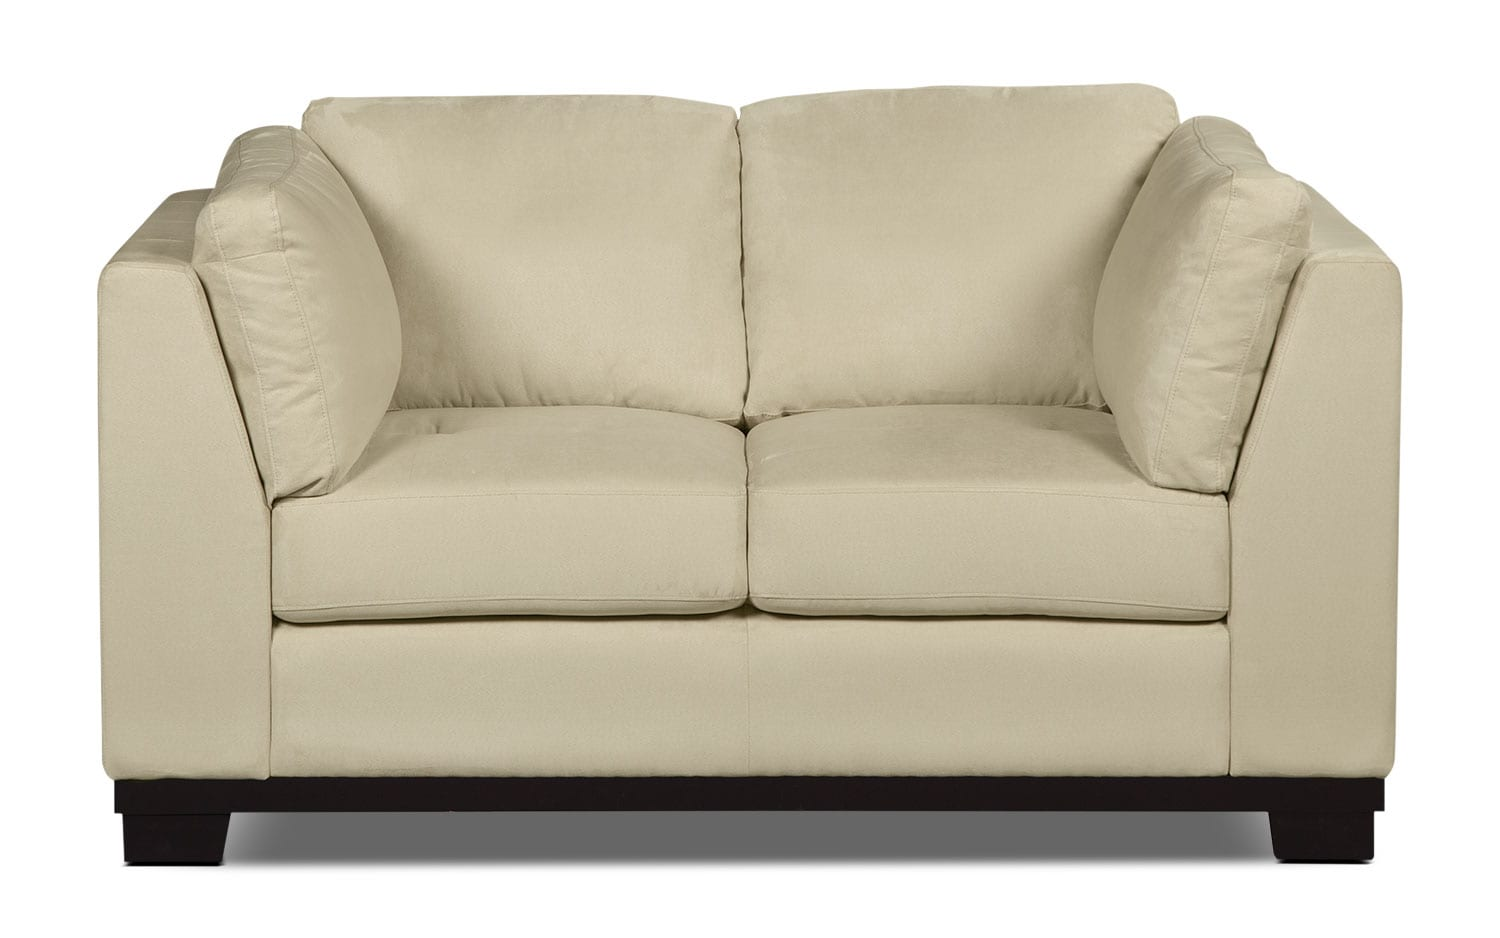 Oakdale 2 Piece Microsuede Right Facing Sectional